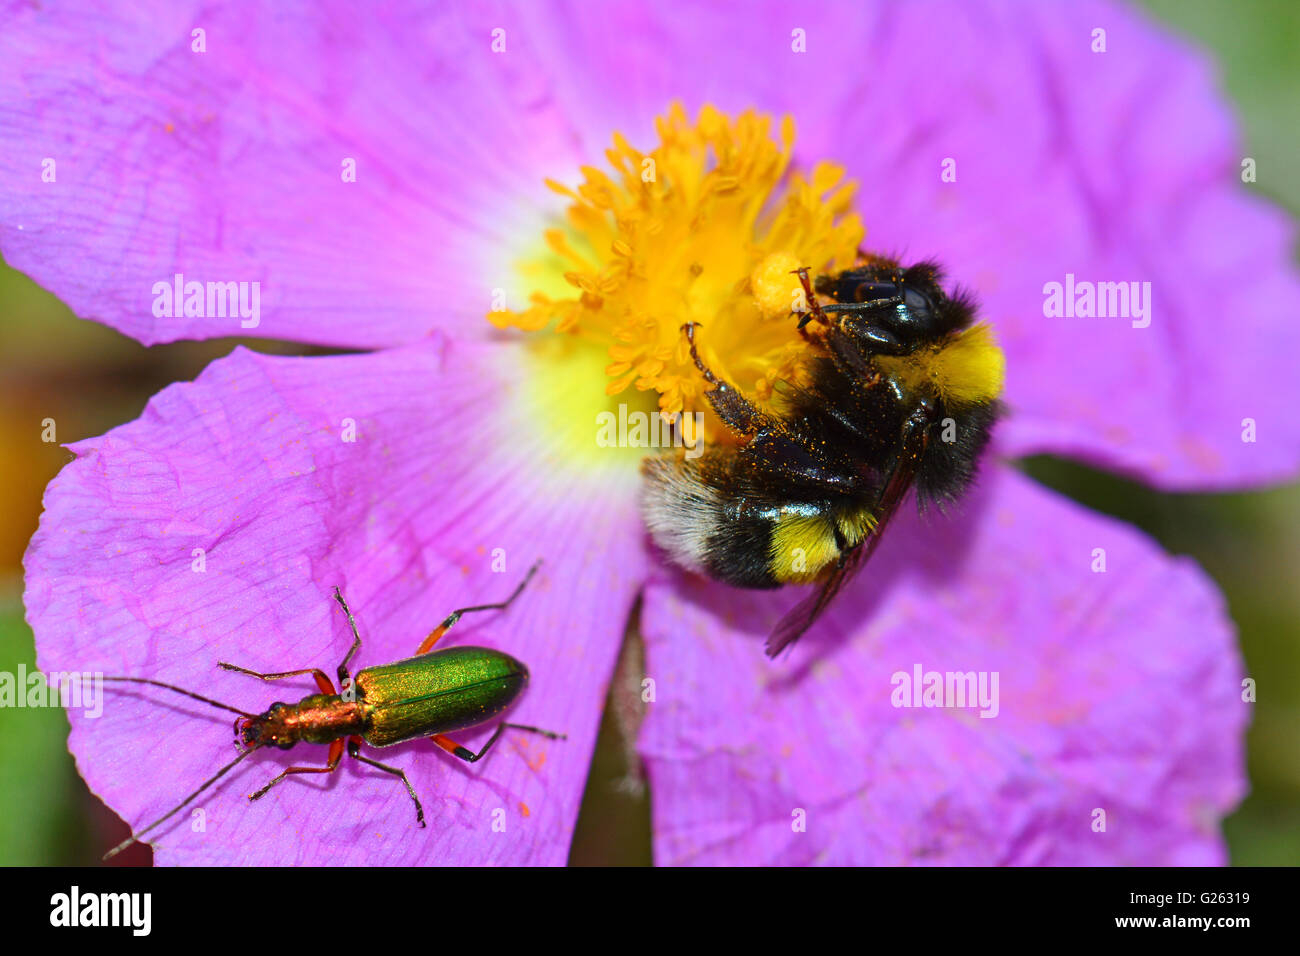 Bumble bee and beetle Pollinating flower - Stock Image